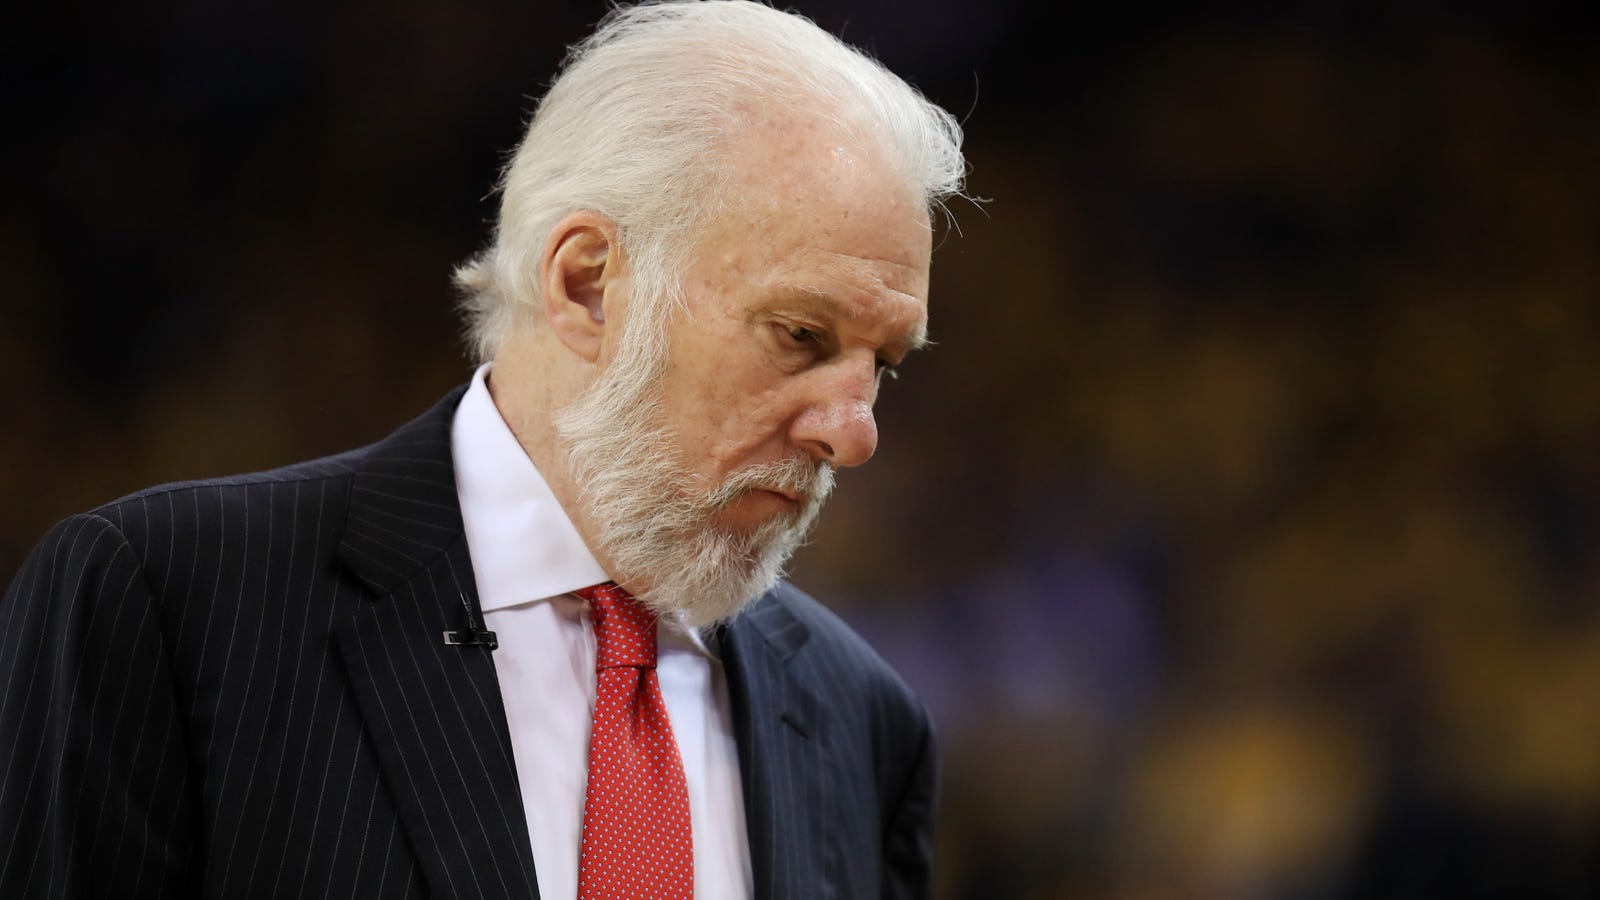 'We Still Have No Clue Of What Being Born White Means' - San Antonio Spurs Coach Gregg Popovich Goes In On White Privilege